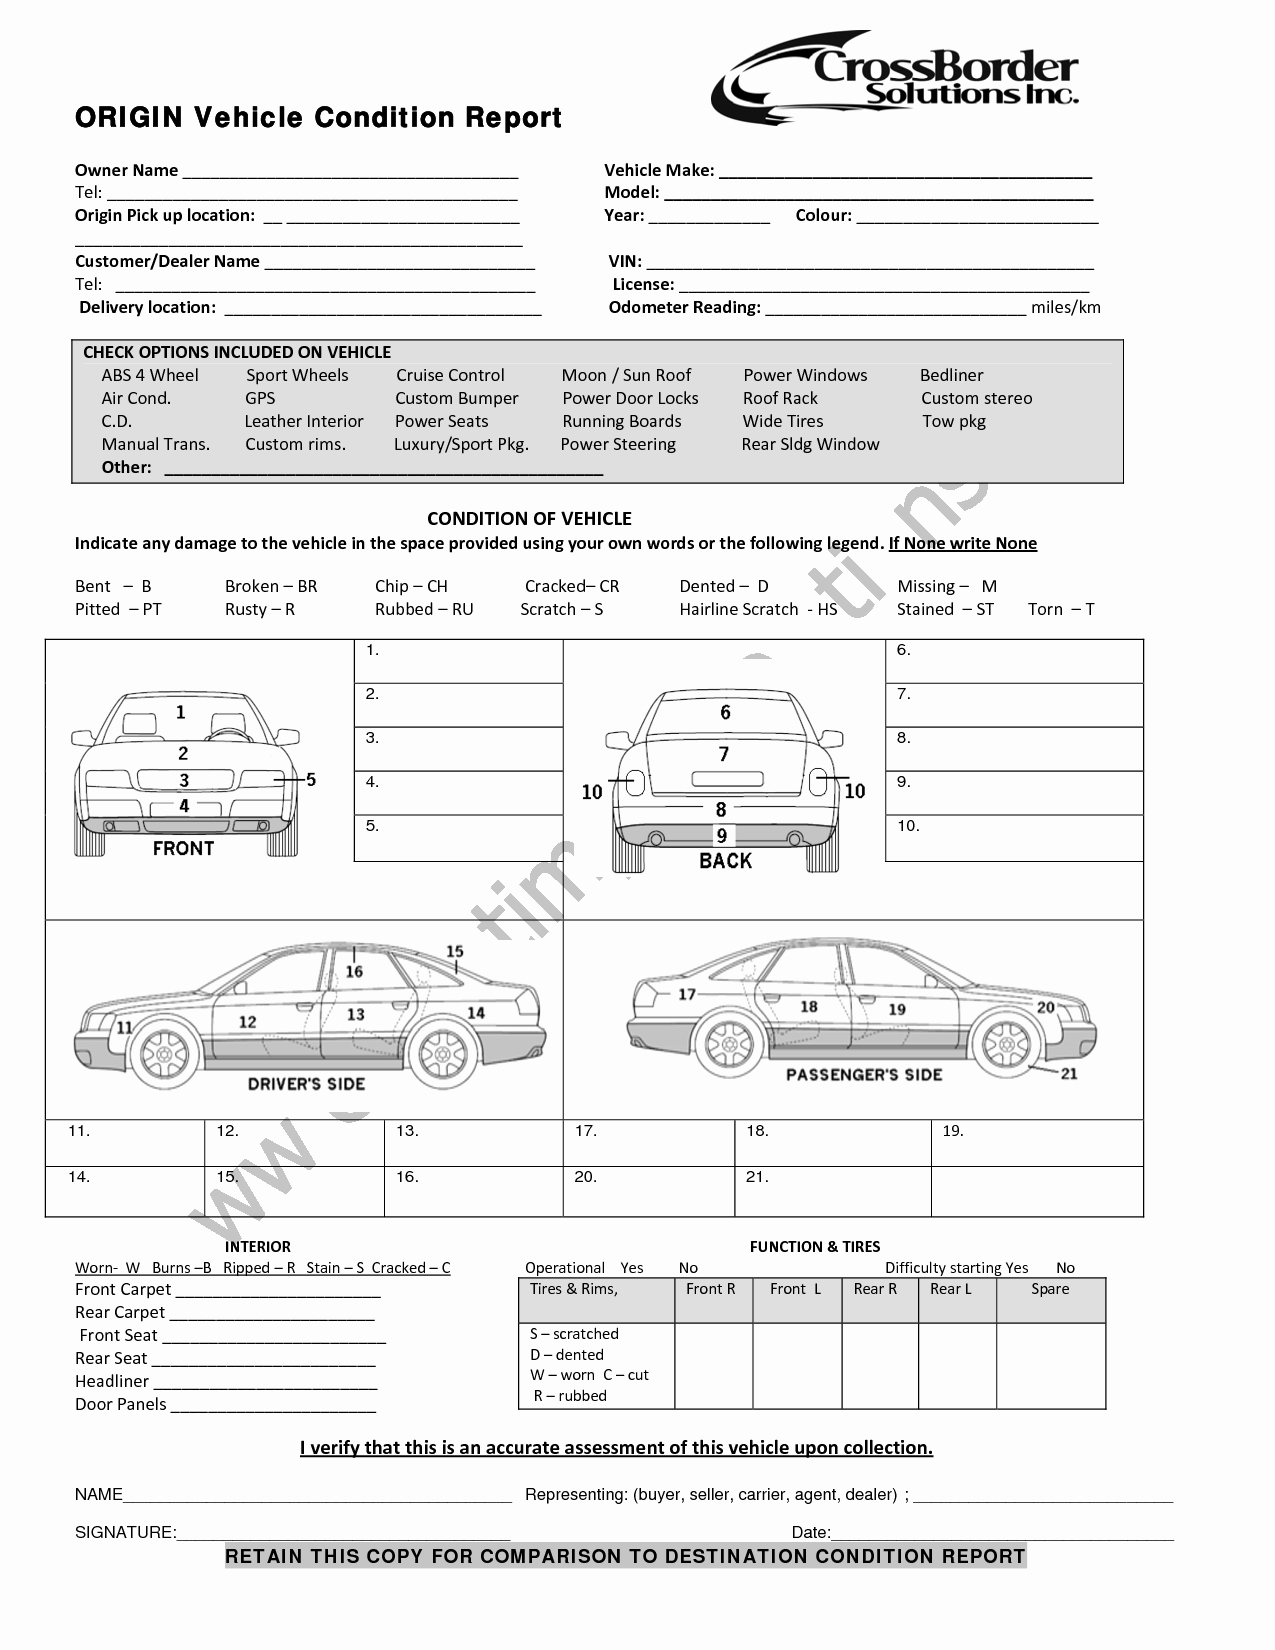 Vehicle Damage Report Template Excel Lovely Vehicle Condition Report Templates Word Excel Samples